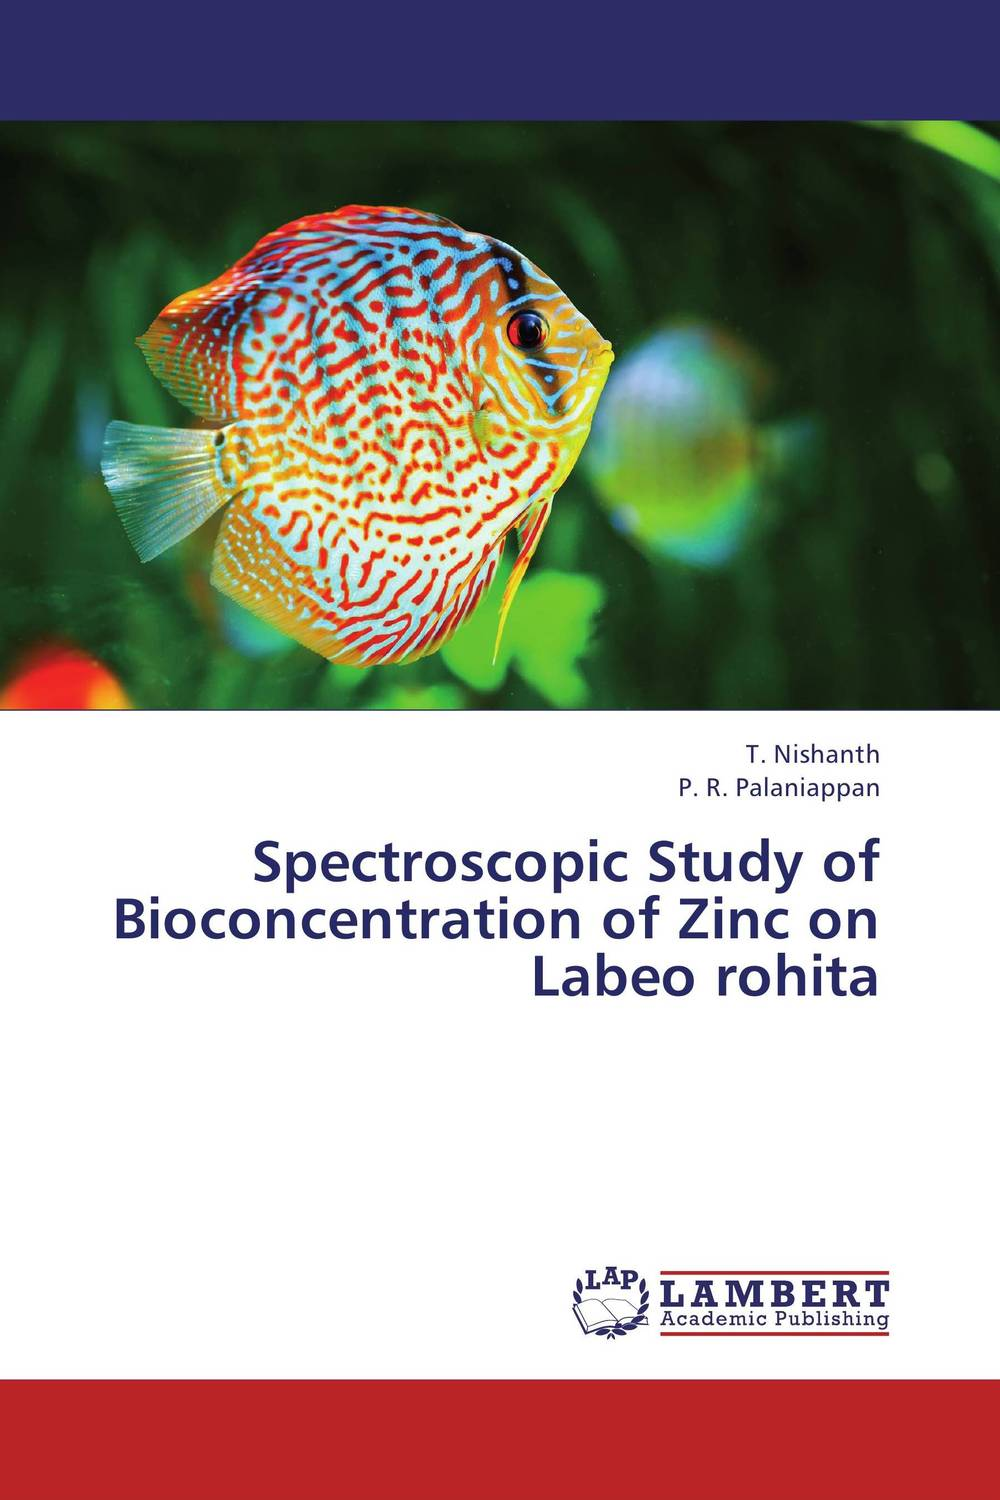 Spectroscopic Study of Bioconcentration of Zinc on Labeo rohita genotoxic effects of tannery industry effluent in labeo rohita